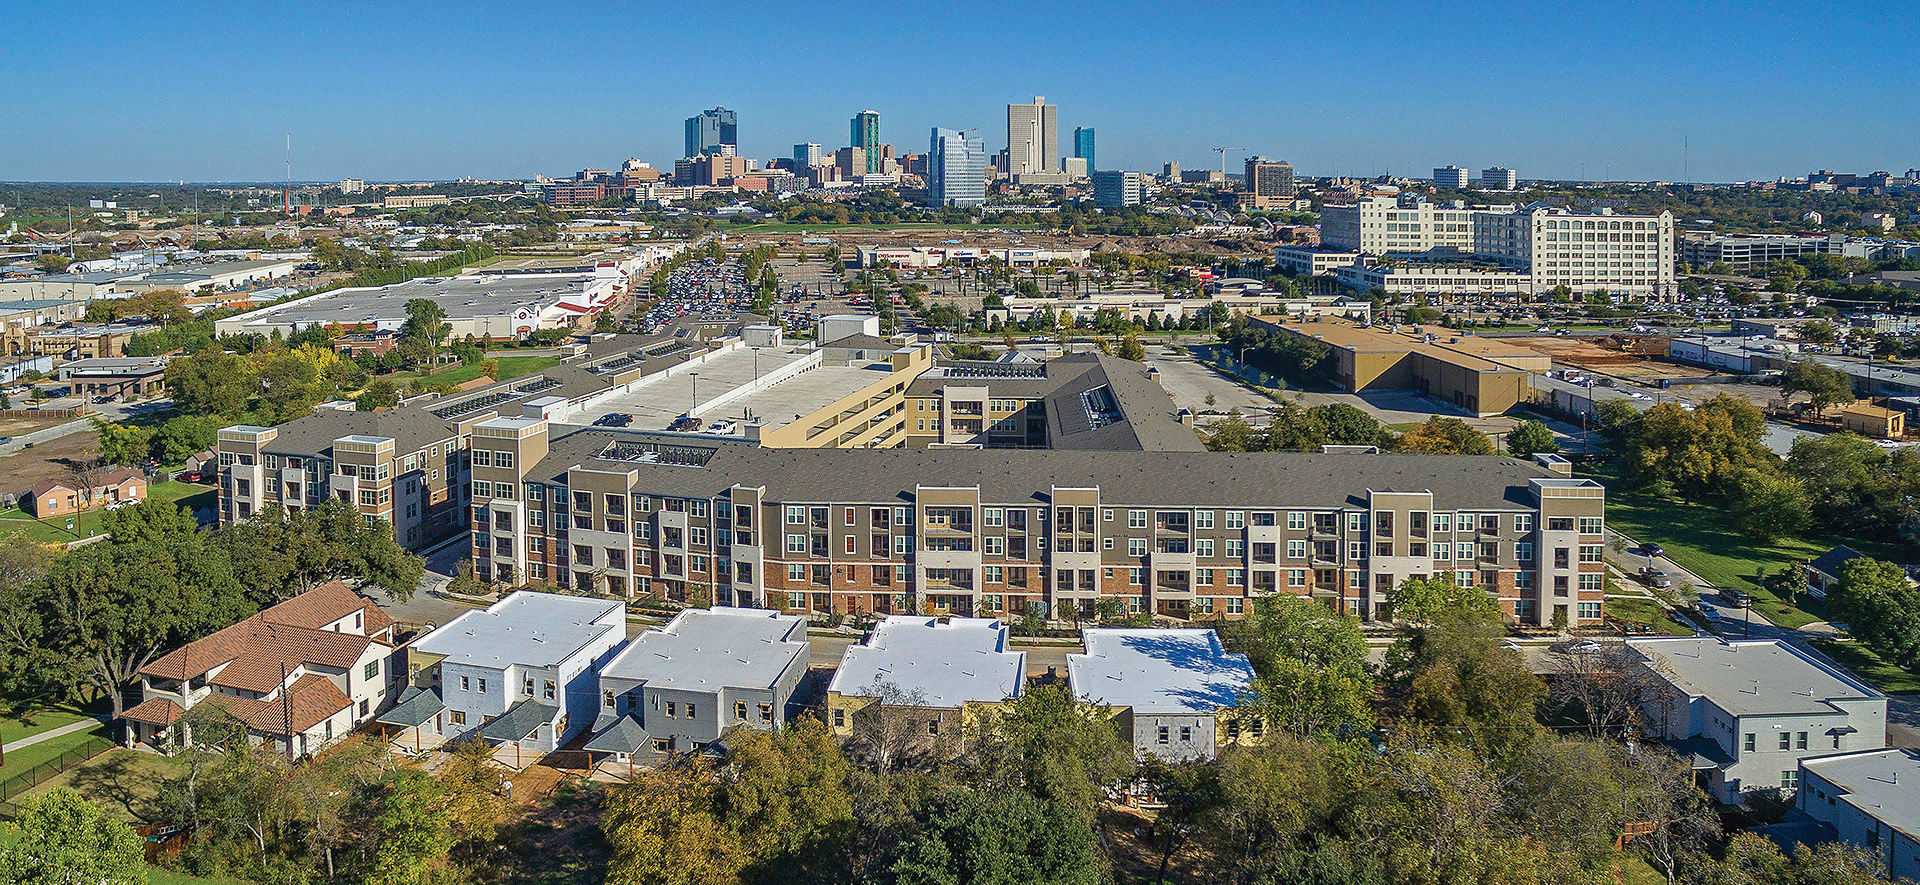 Aerial view of a large brown and white apartment complex with red brick and views of downtown Fort Worth